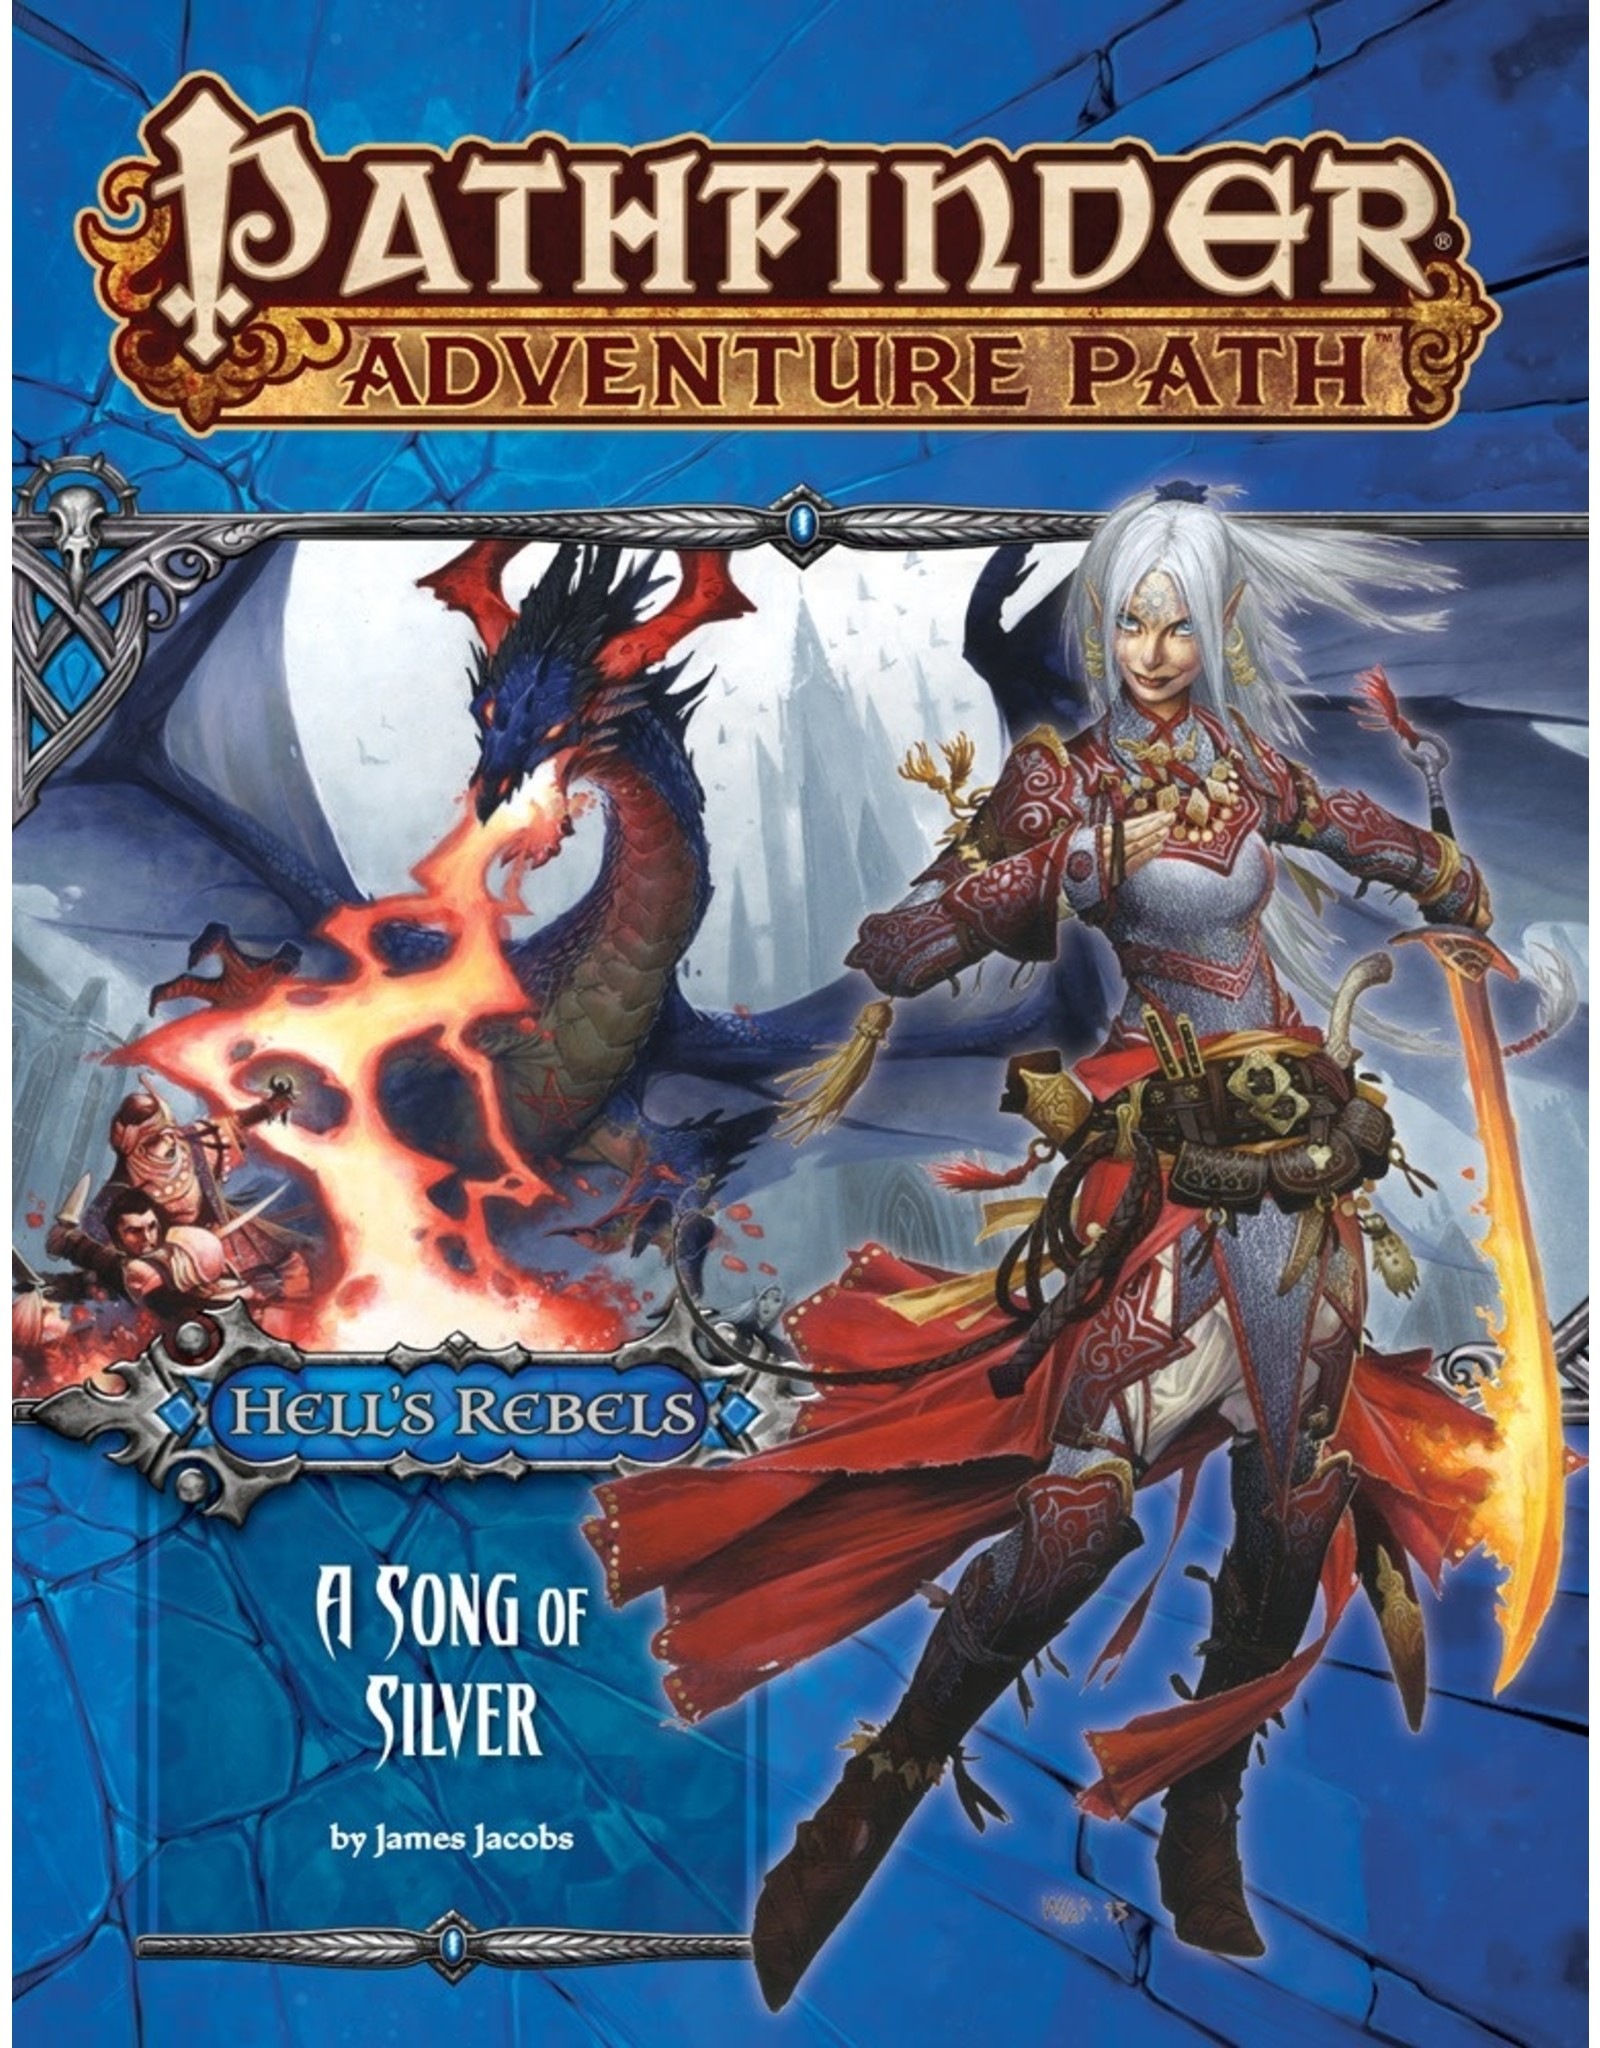 Pathfinder Adventure Path #100: Hell's Rebels - A Song of Silver